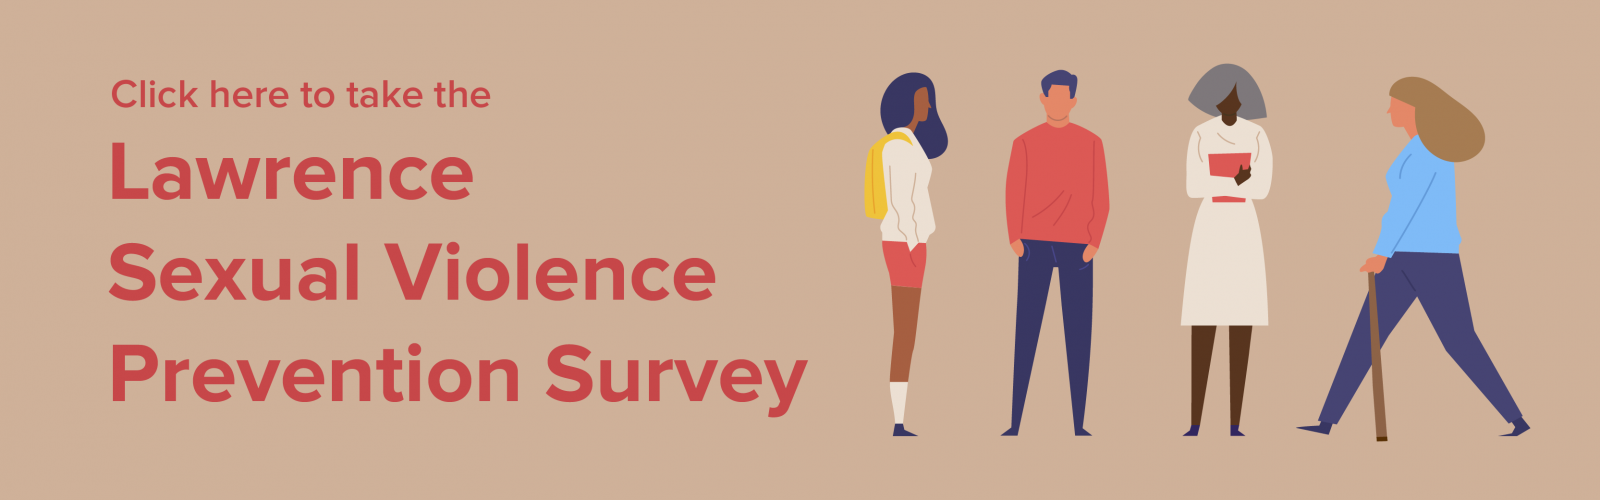 Click here to take the Lawrence Sexual Violence Prevention Survey